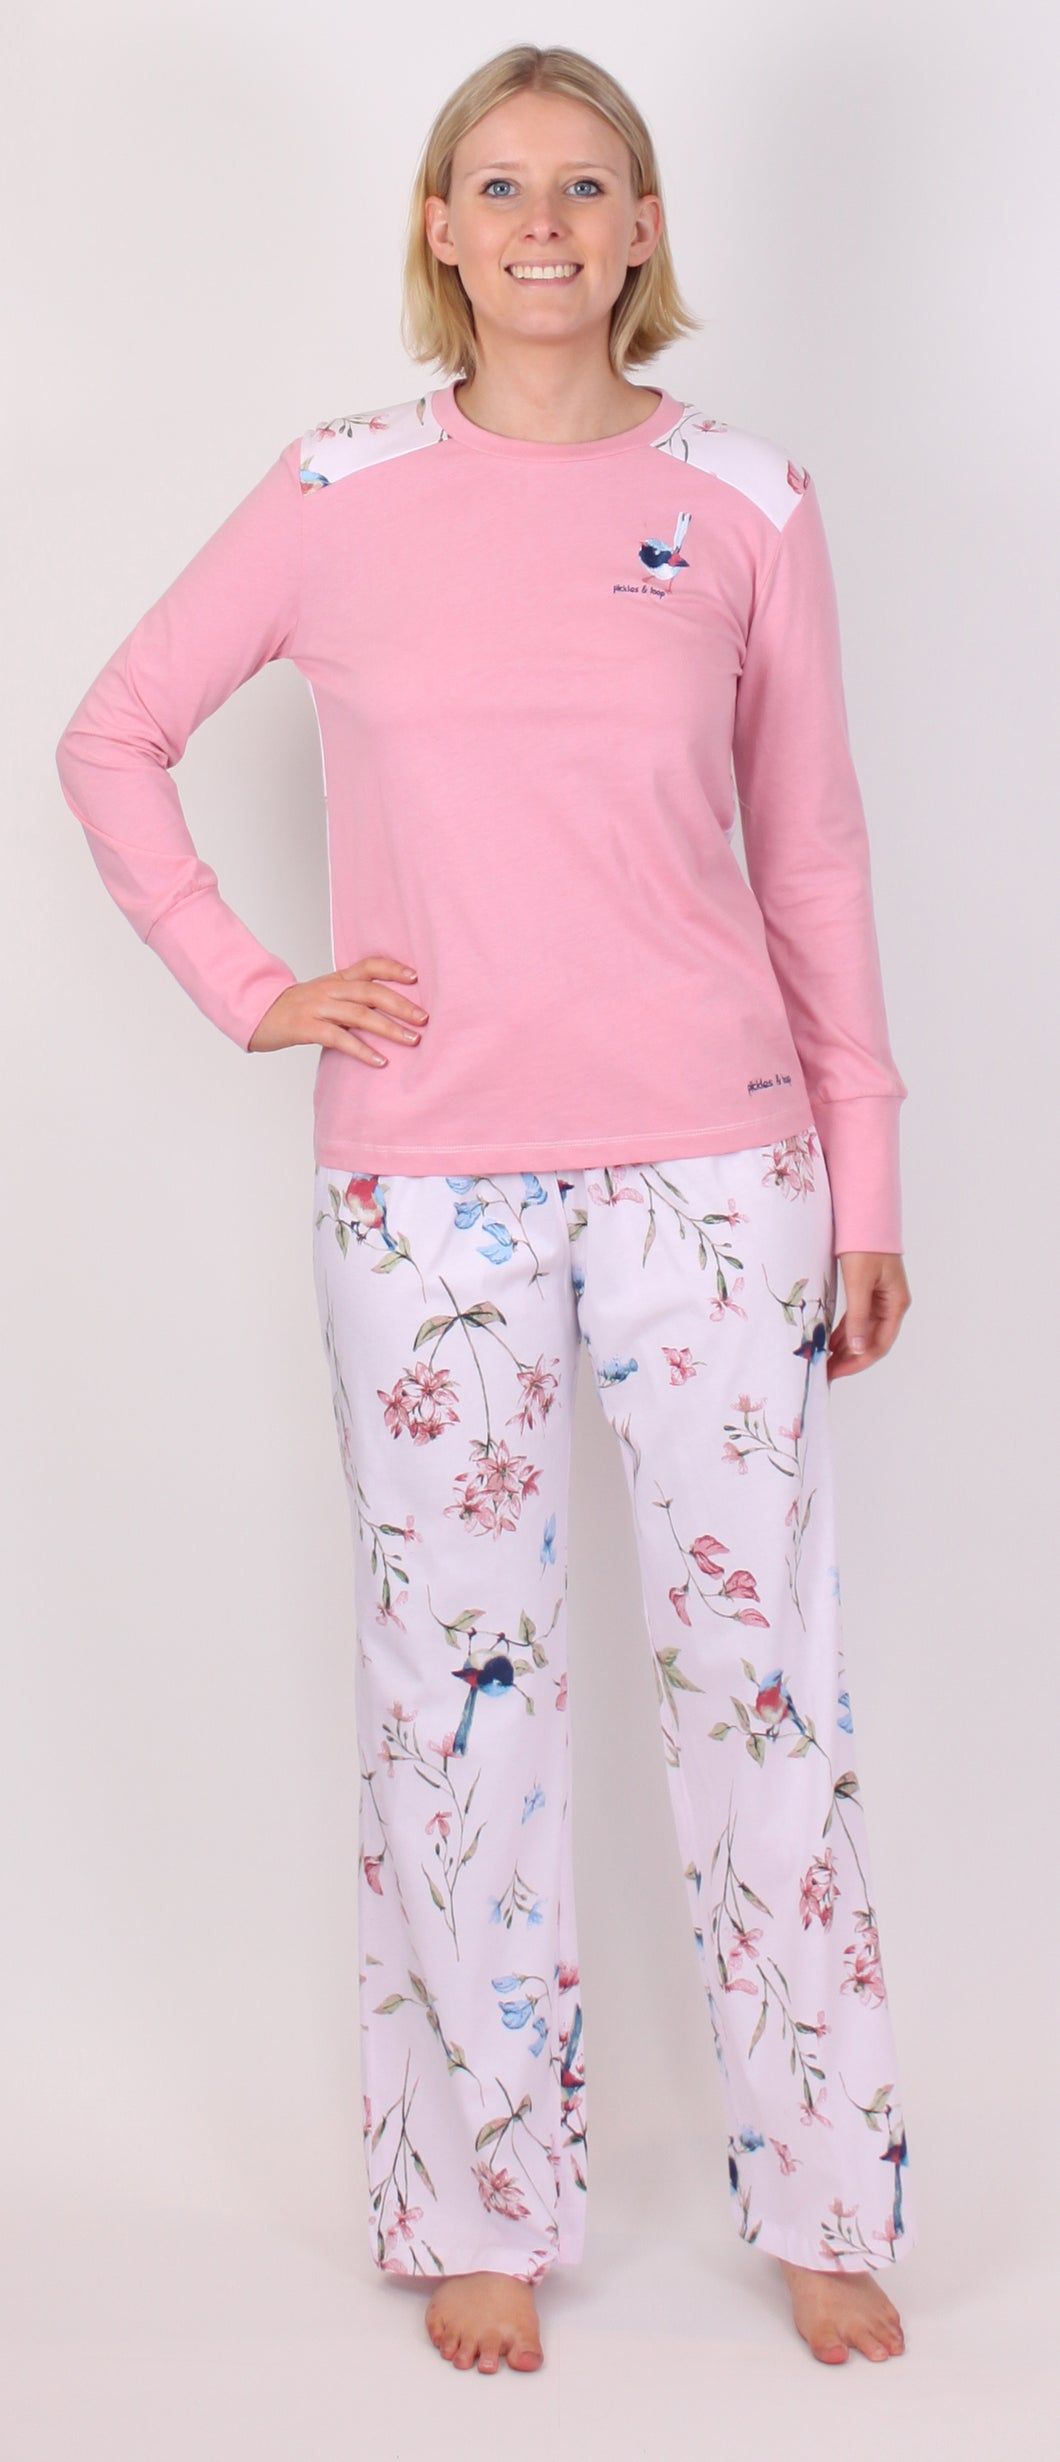 PICKLES AND LOOP BOTANICAL WREN PRINT PJ BOTTOMS AND PINK PJ TOP WITH EMBROIDERY PL452